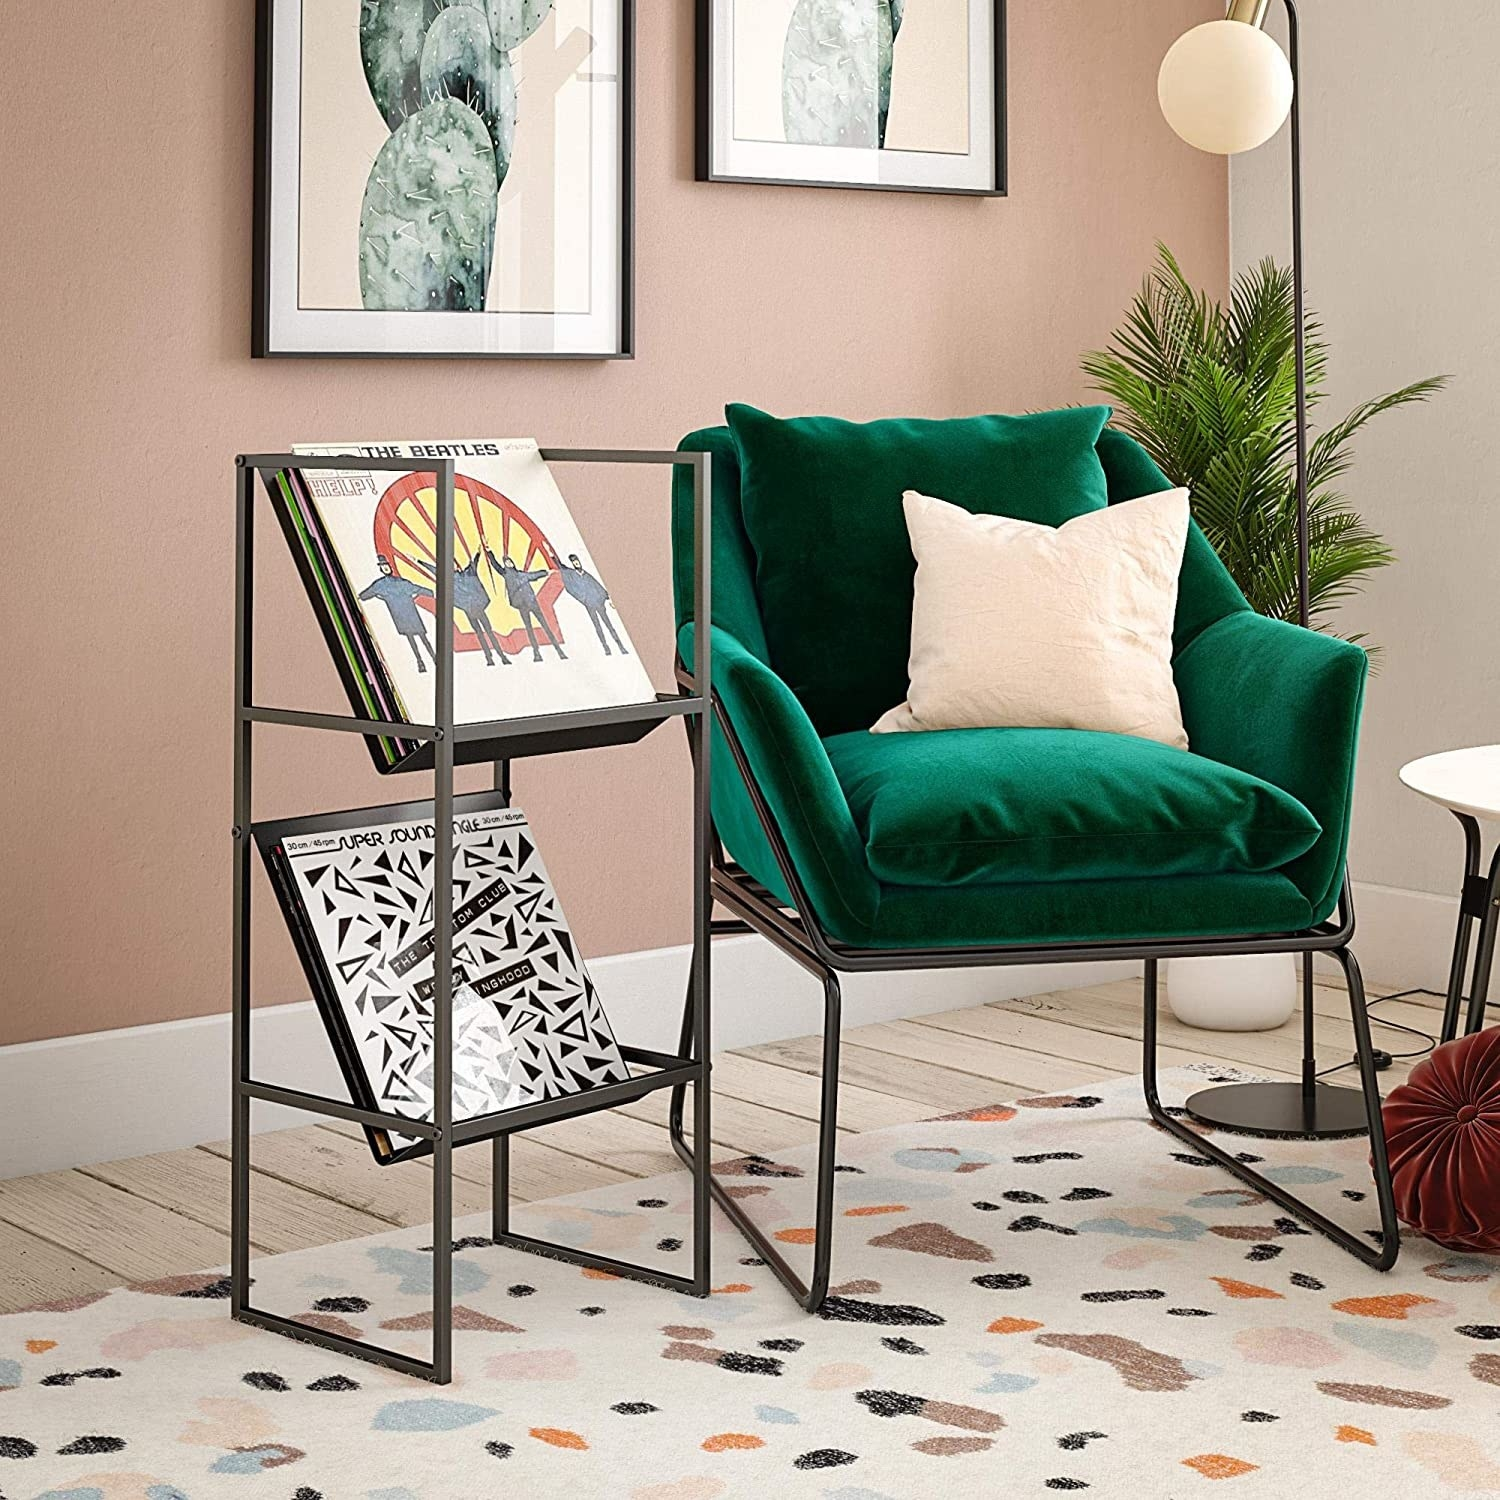 green chair with a shelf beside it with two tiers that hold vinyl records